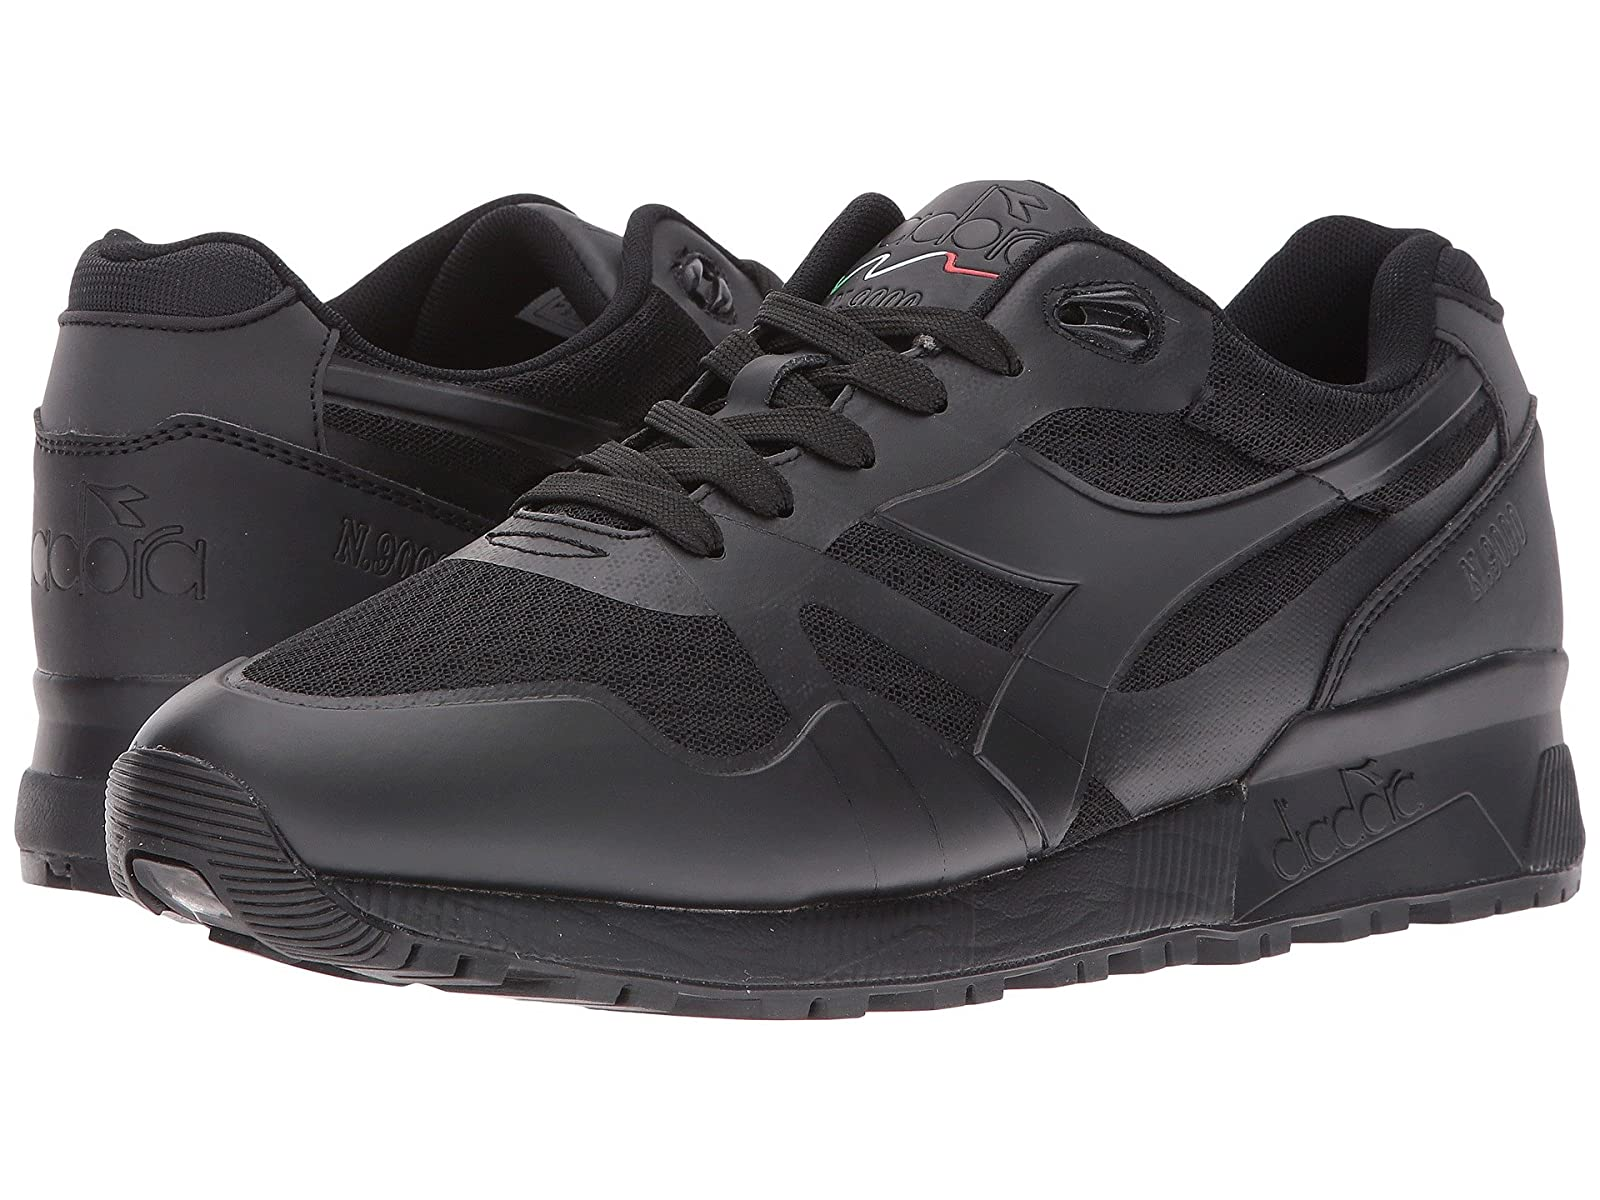 Diadora N9000 MM IICheap and distinctive eye-catching shoes